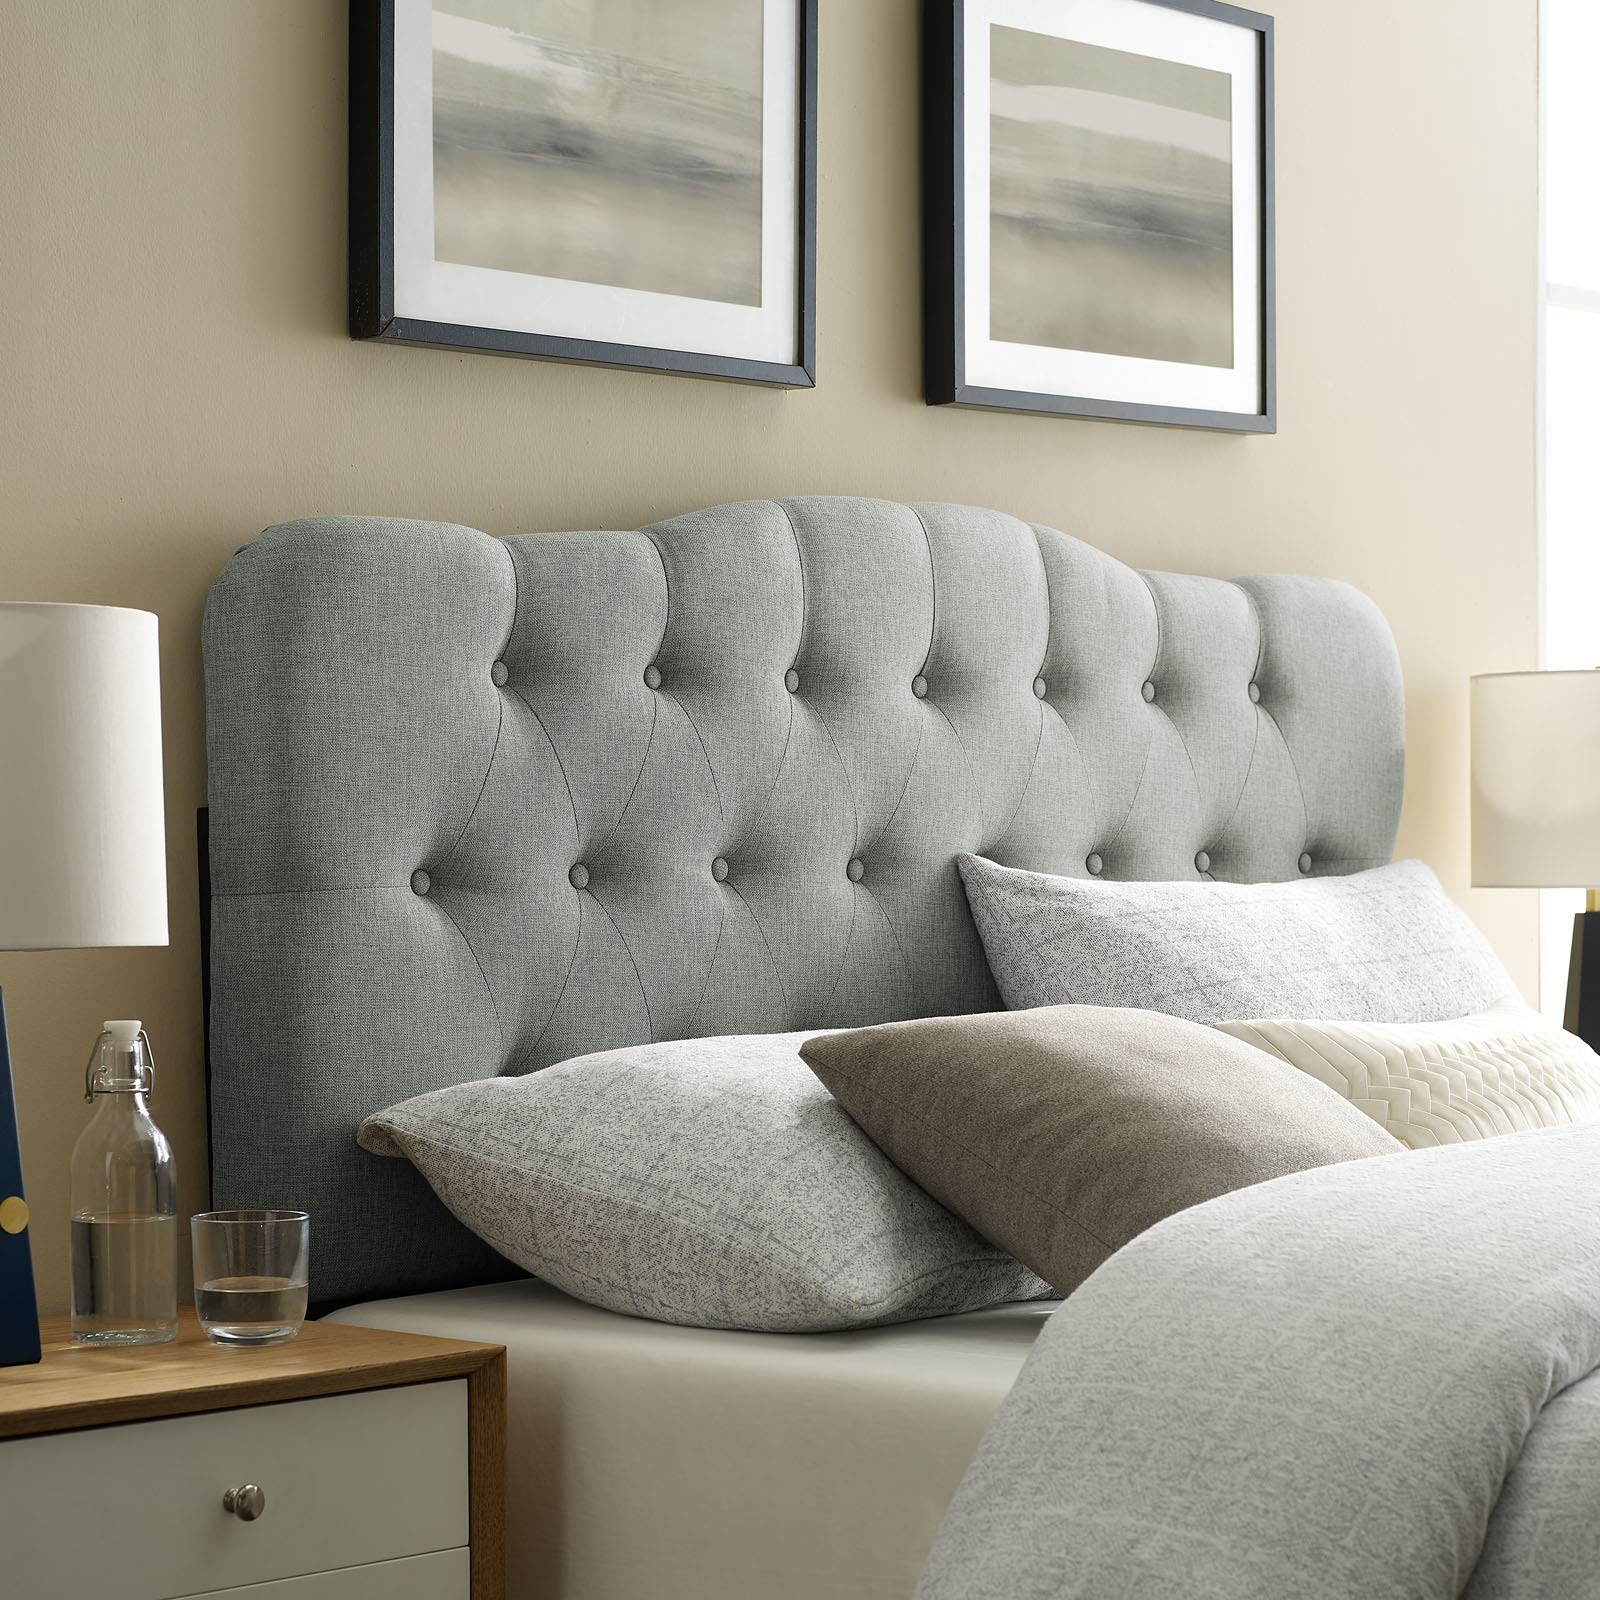 Modway Annabel Tufted Button Linen Fabric Upholstered Queen Headboard in Gray by Modway